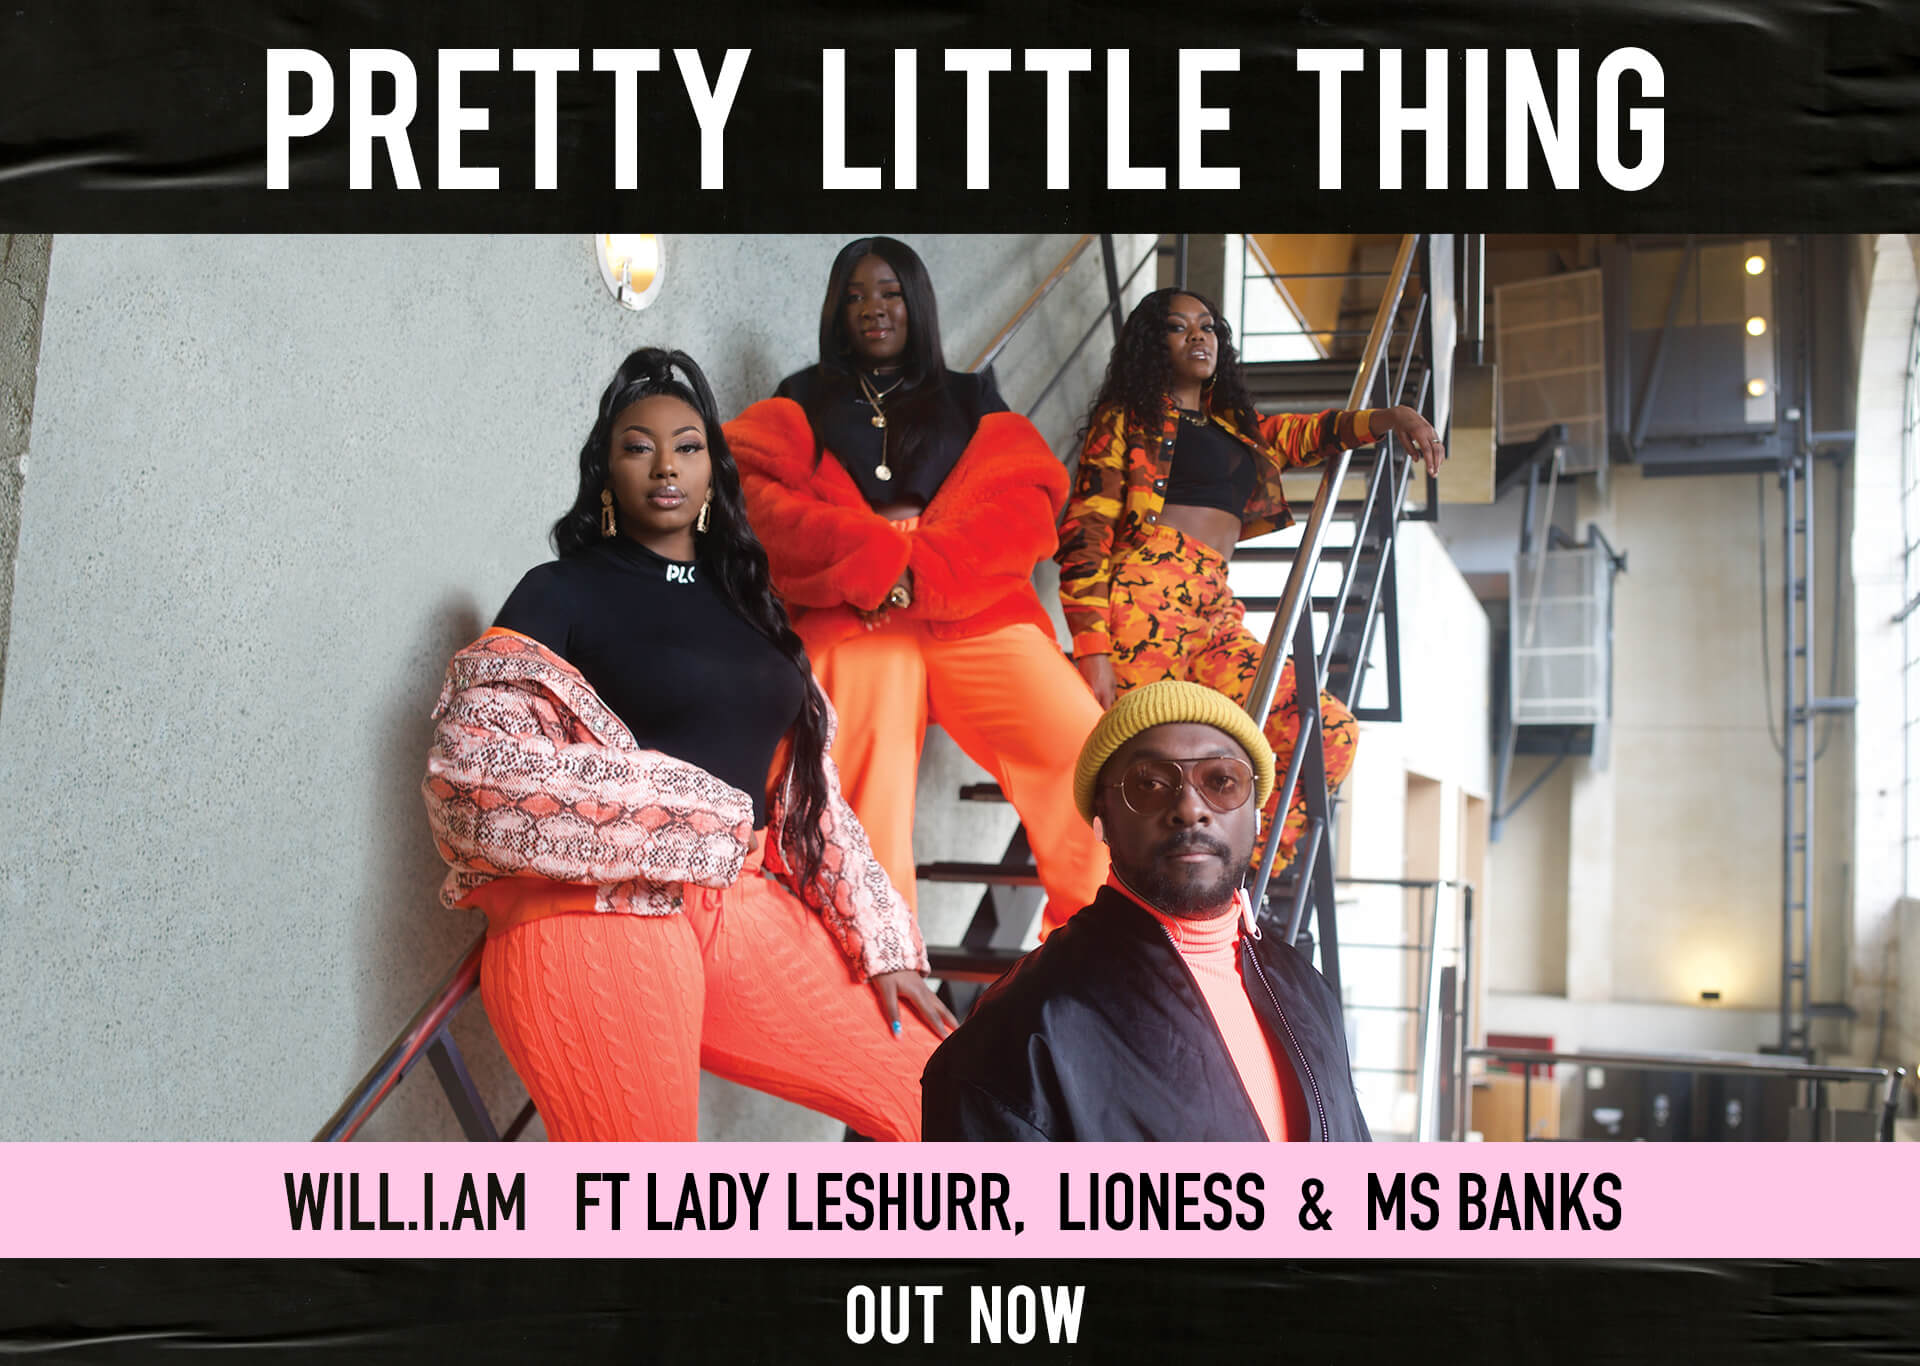 PrettyLittleThings ft Will.I.Am | PrettyLittleThing